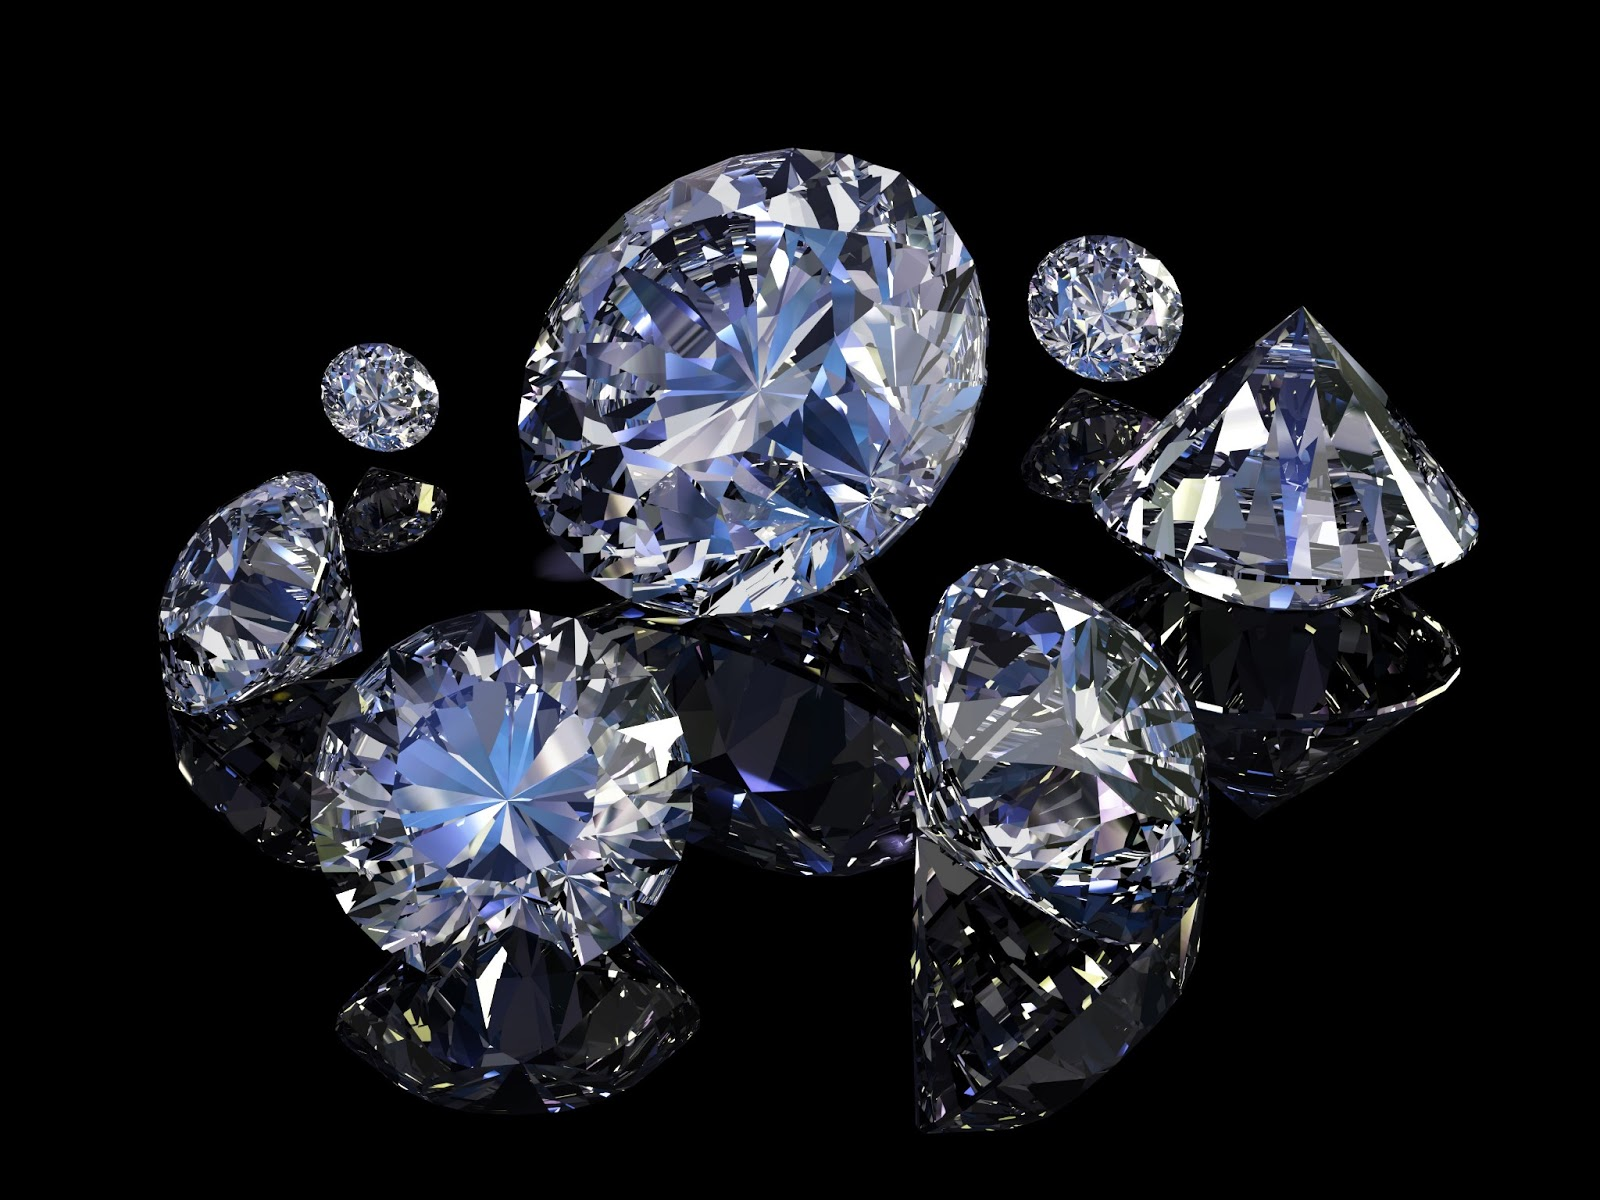 Costly HD Diamond Wallpapers Full Width Wallpapers Fever 1600x1200